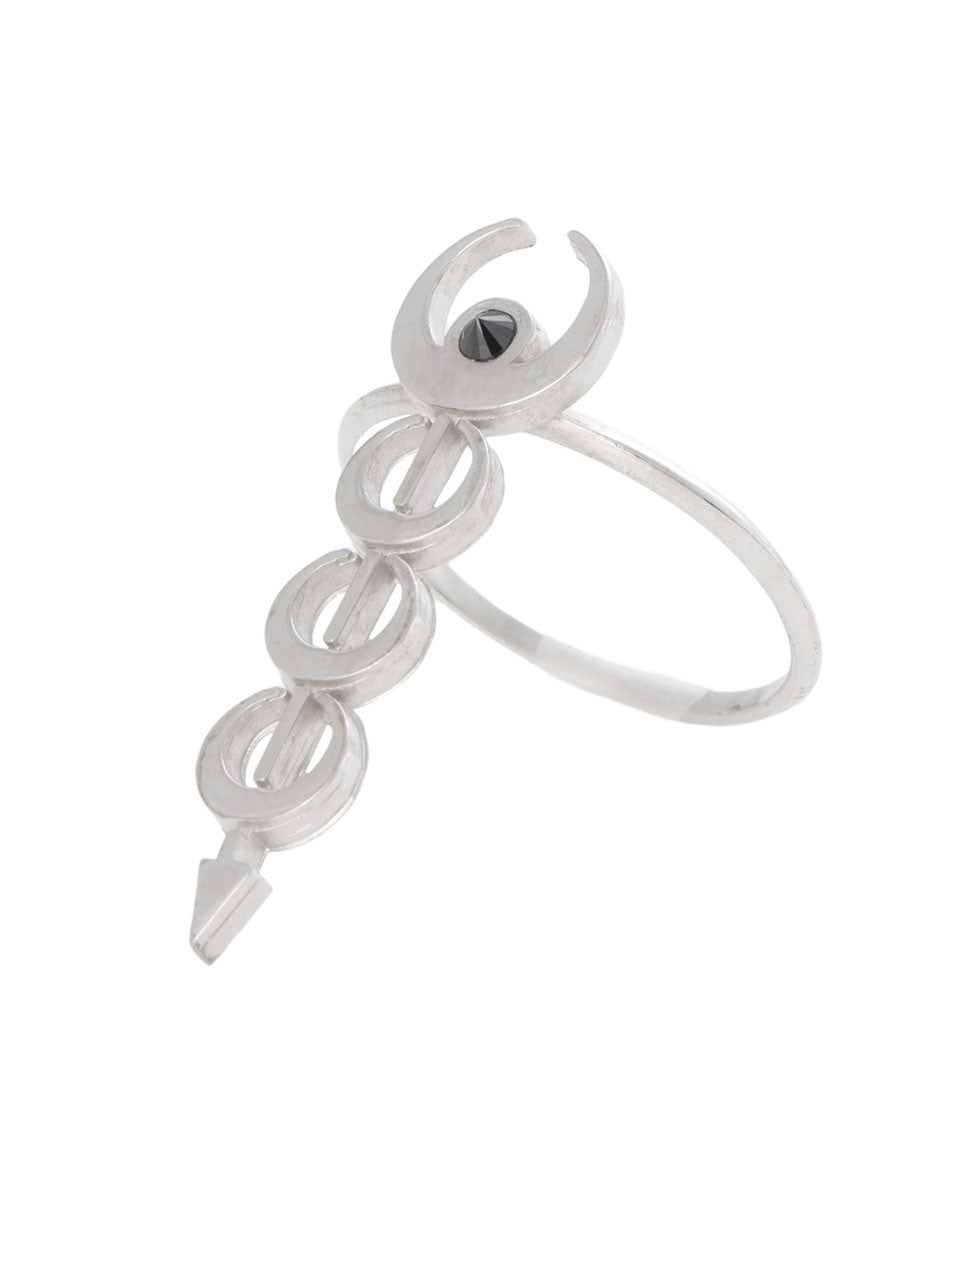 The Sadi Crescent Stacked Moon Silver Ring